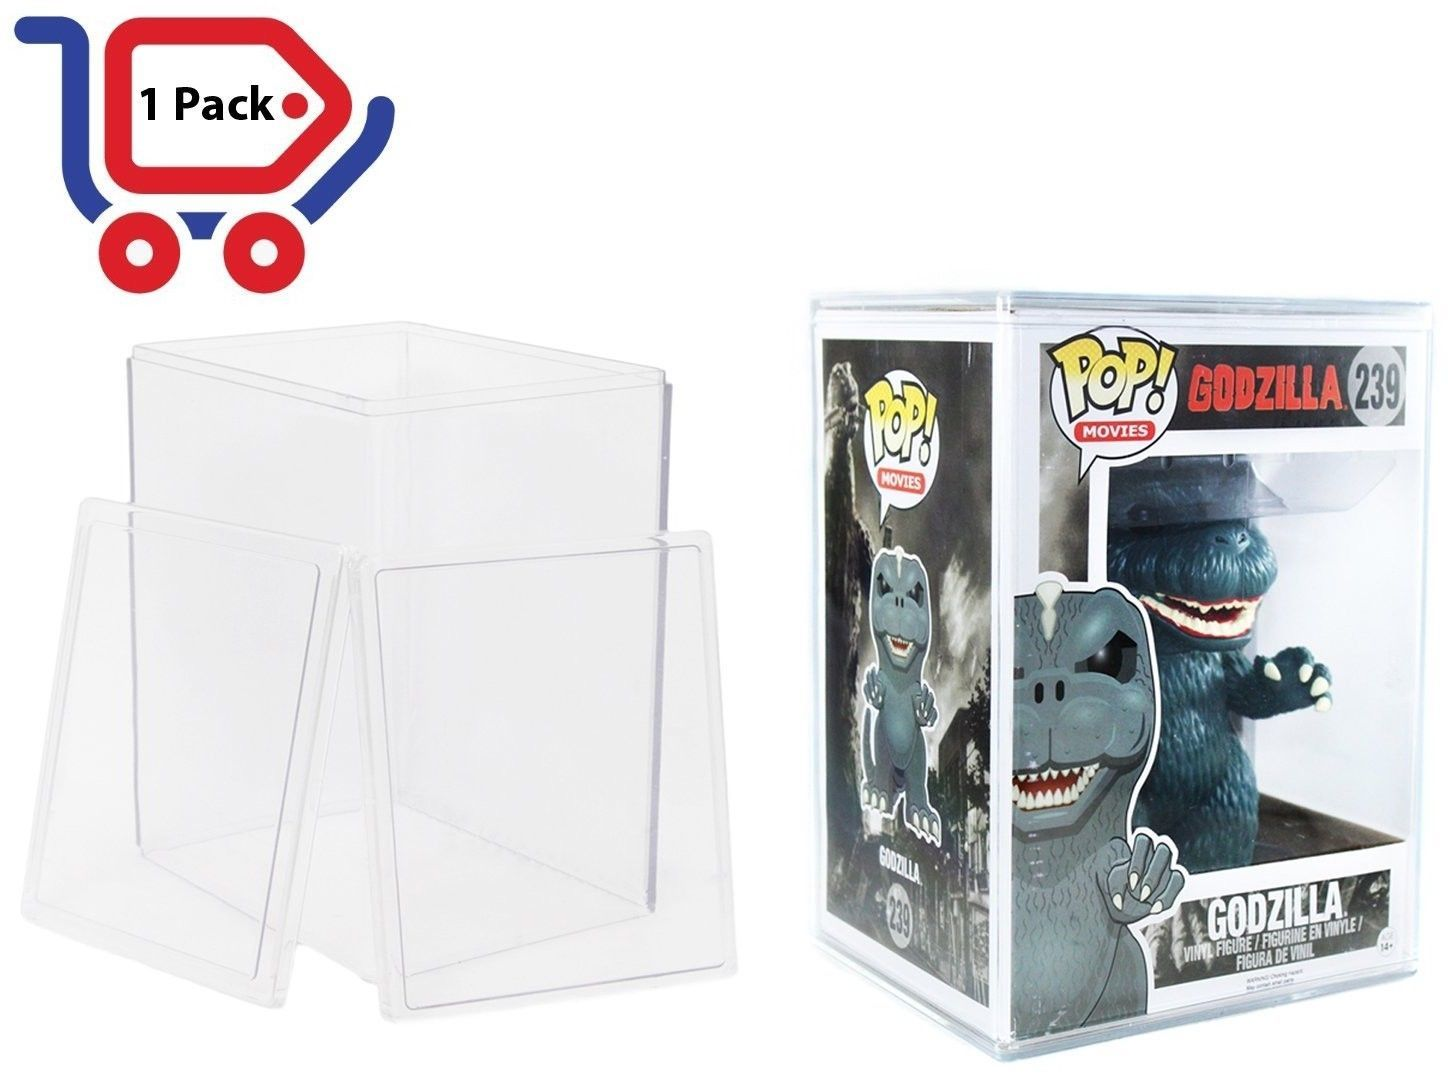 Funko Pop Acid-free Hard Plastic Protector Case - Fits 6-inch Pop Figures